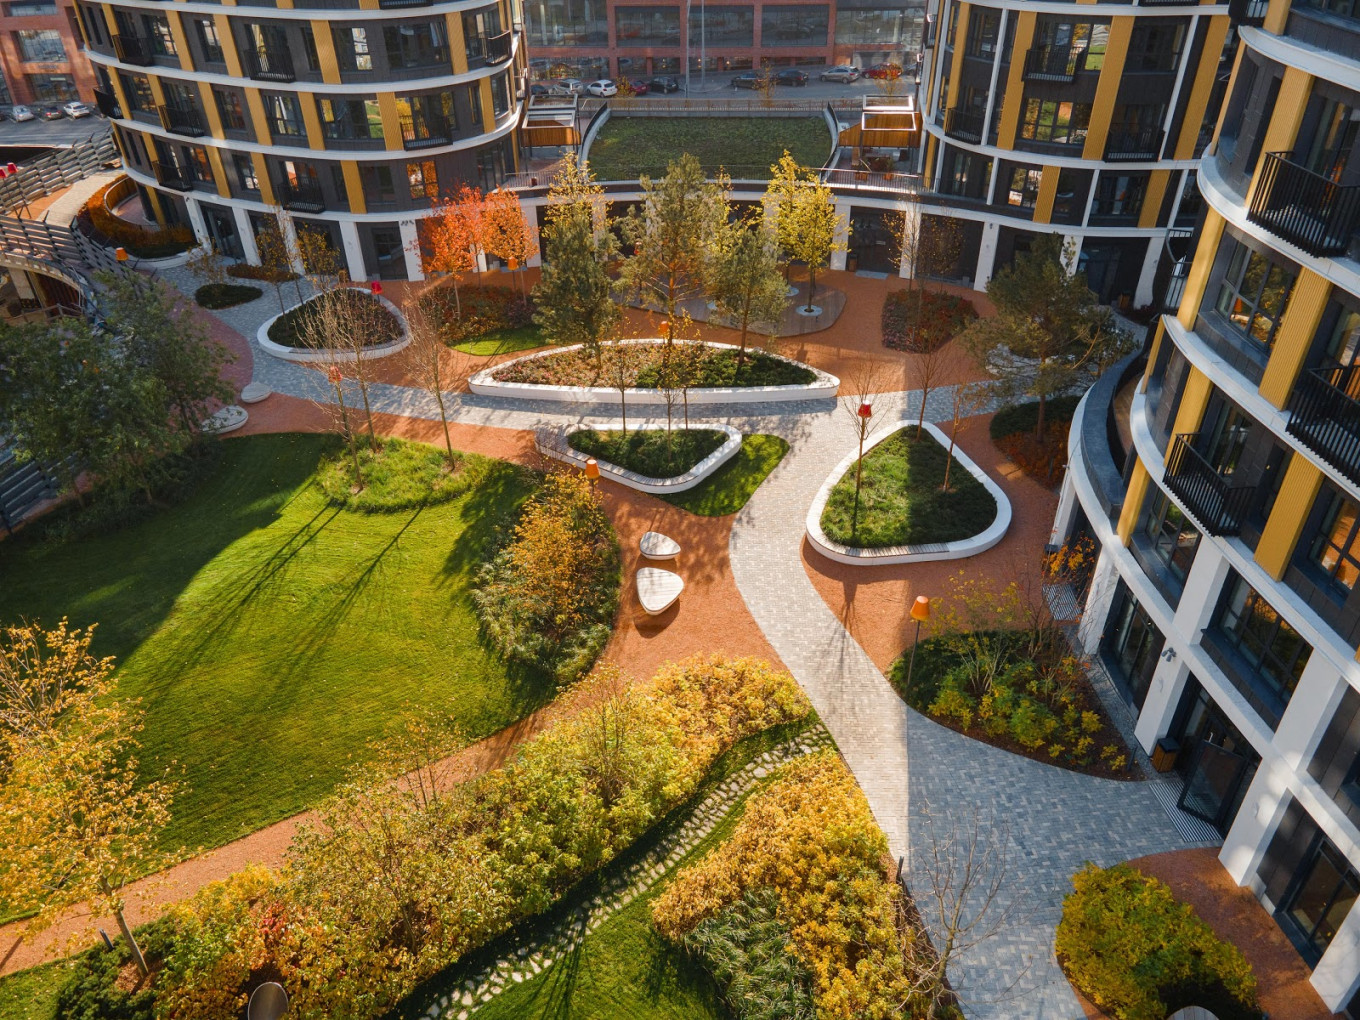 Over 150 mature trees and thousands of plants and shrubs turn the courtyards and roofs into an urban oasis. Photo: S&P Architektura Krajobrazu